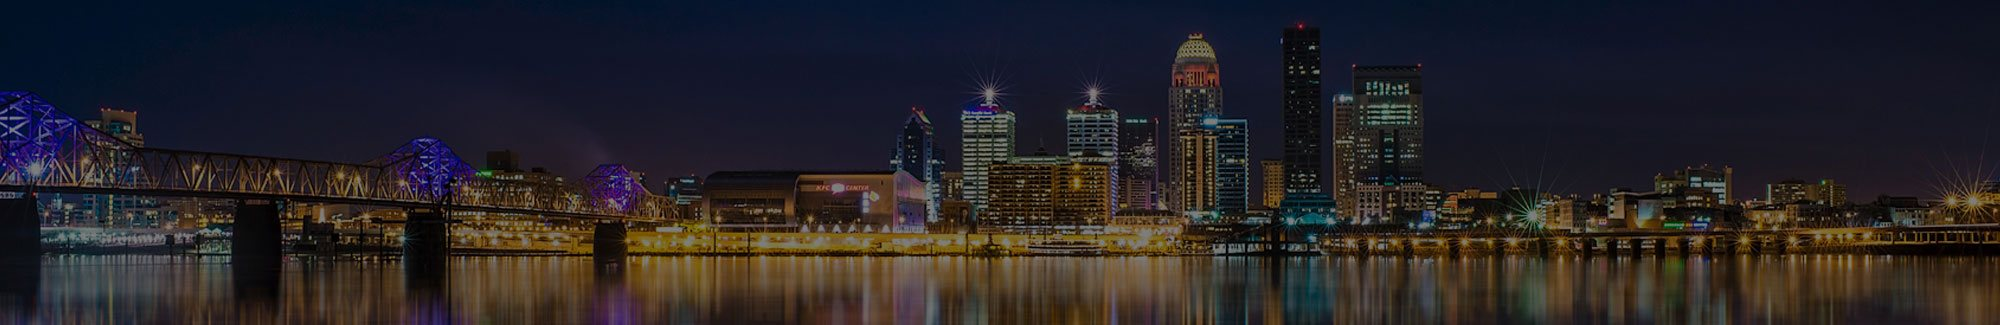 Louisville KY skyline at night